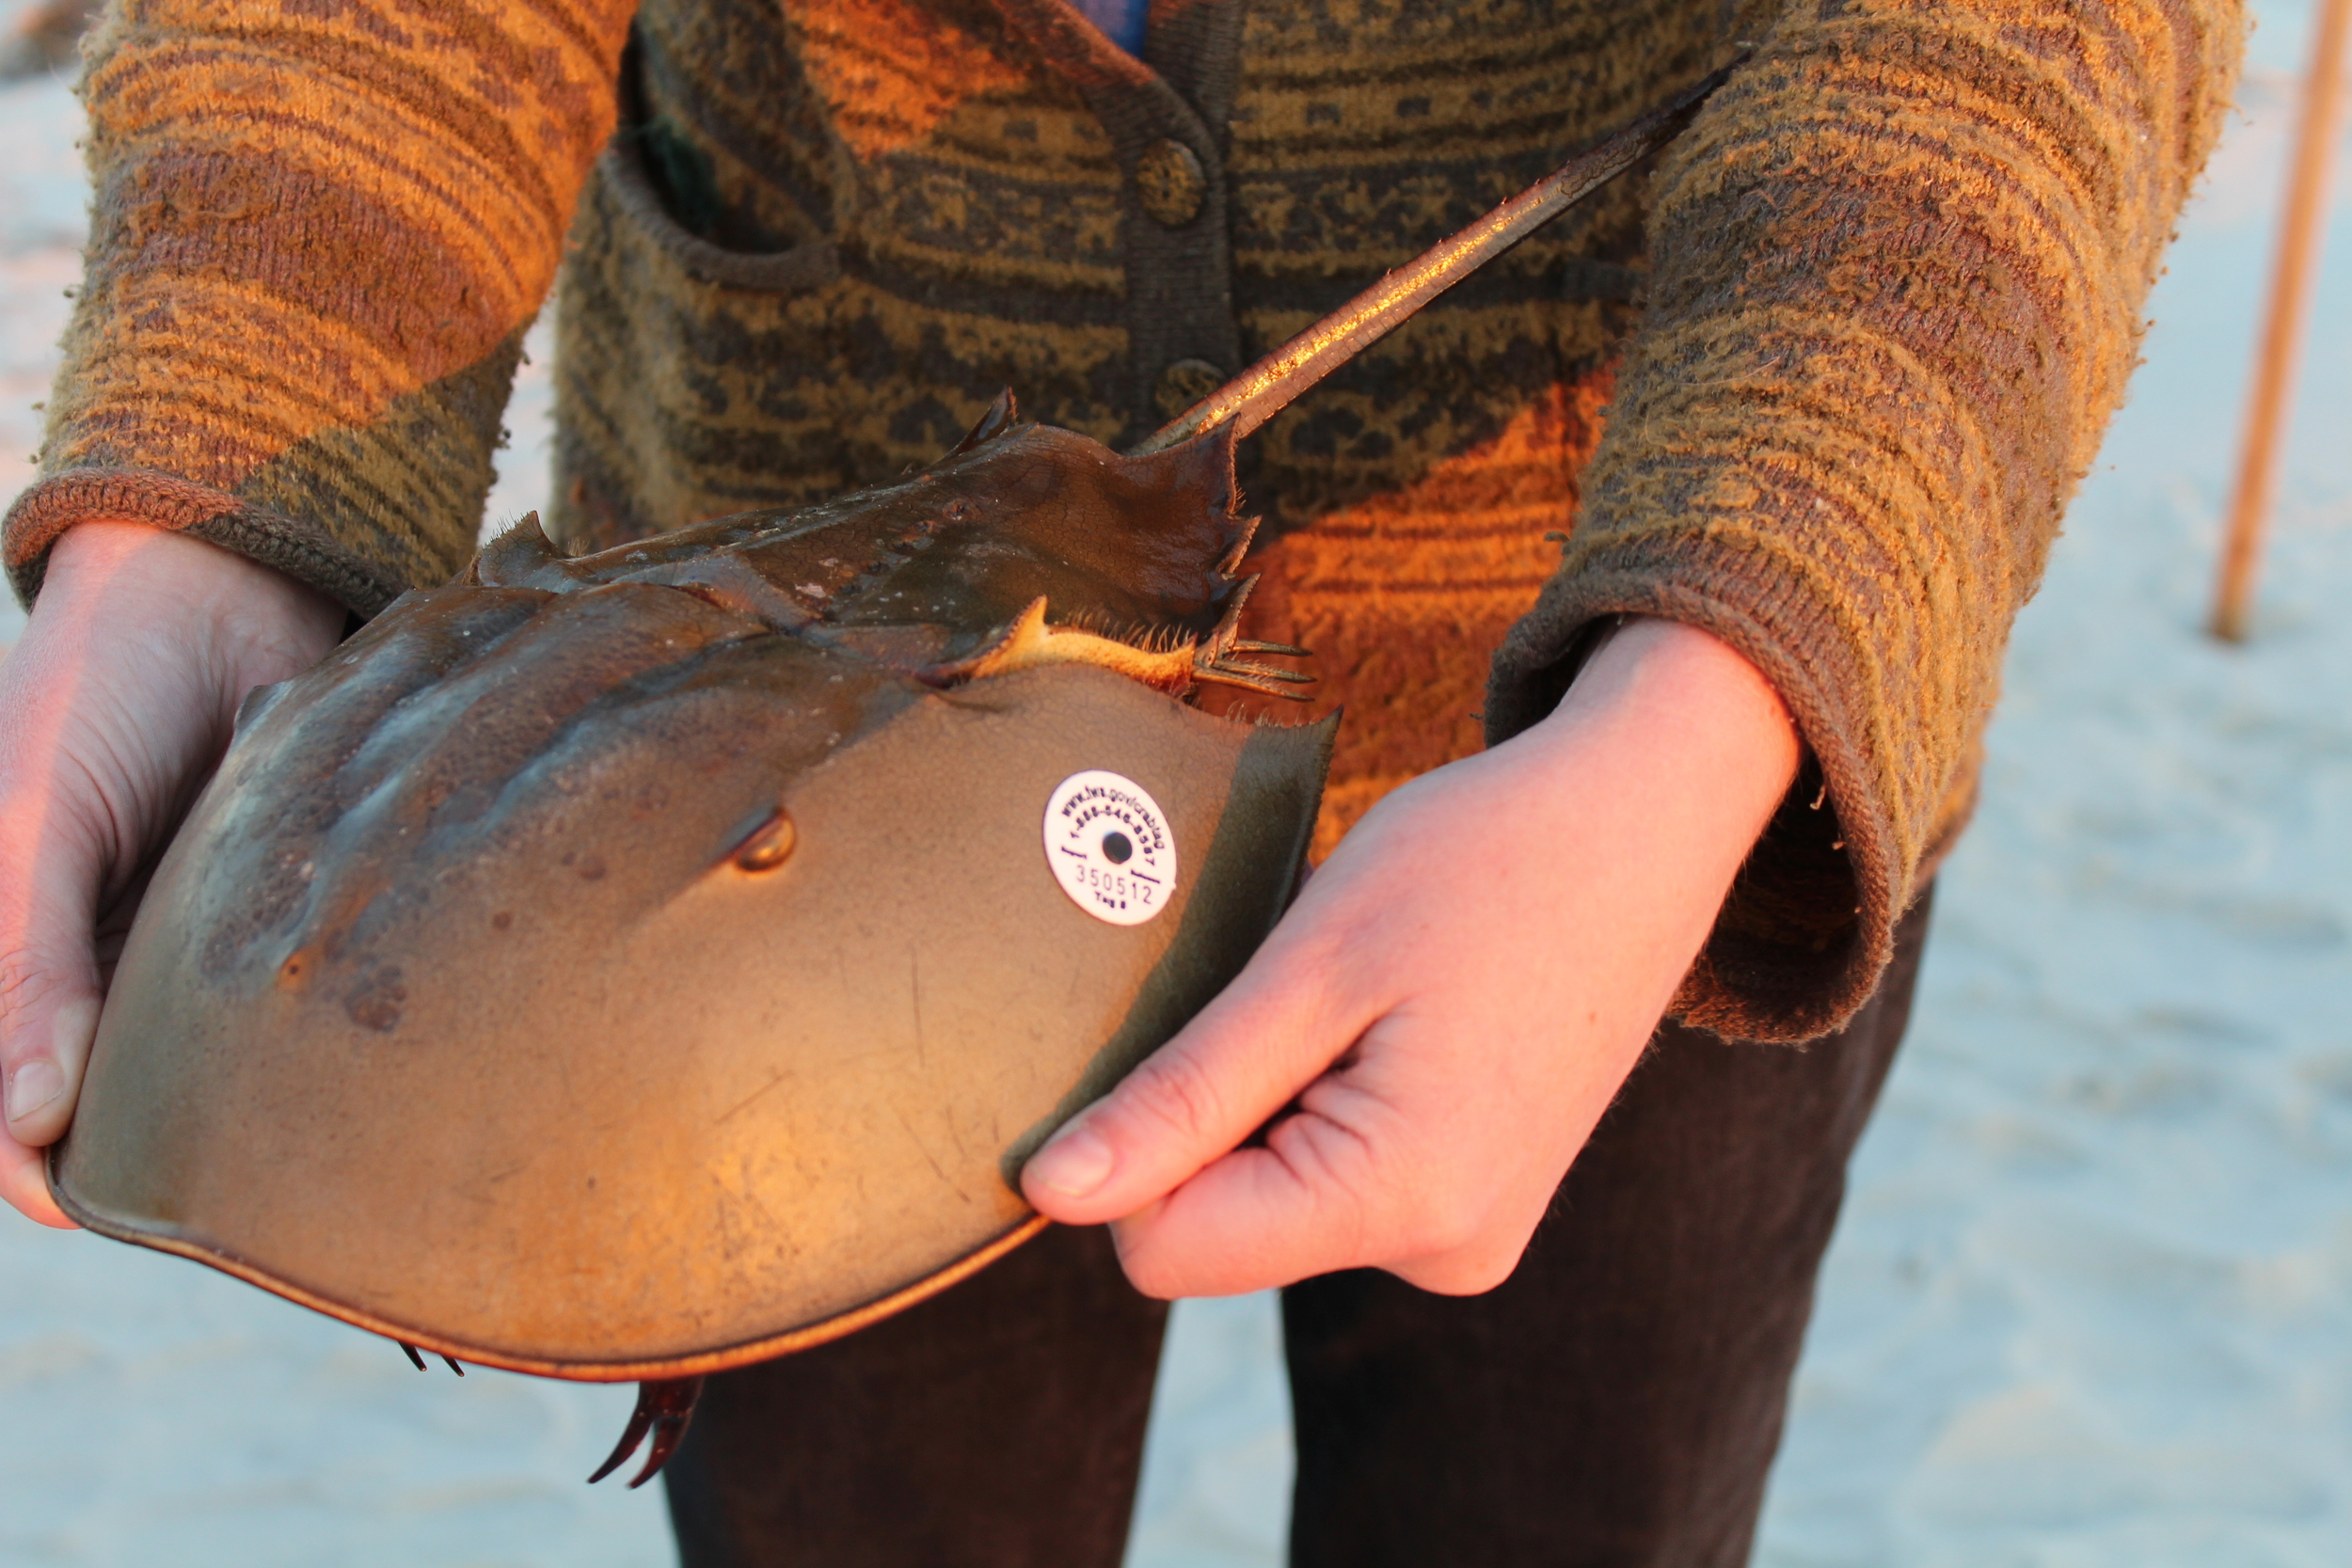 SCDNR staff and volunteers tagged over 700 horseshoe crabs in May 2016. (Photo: E. Weeks/SCDNR)